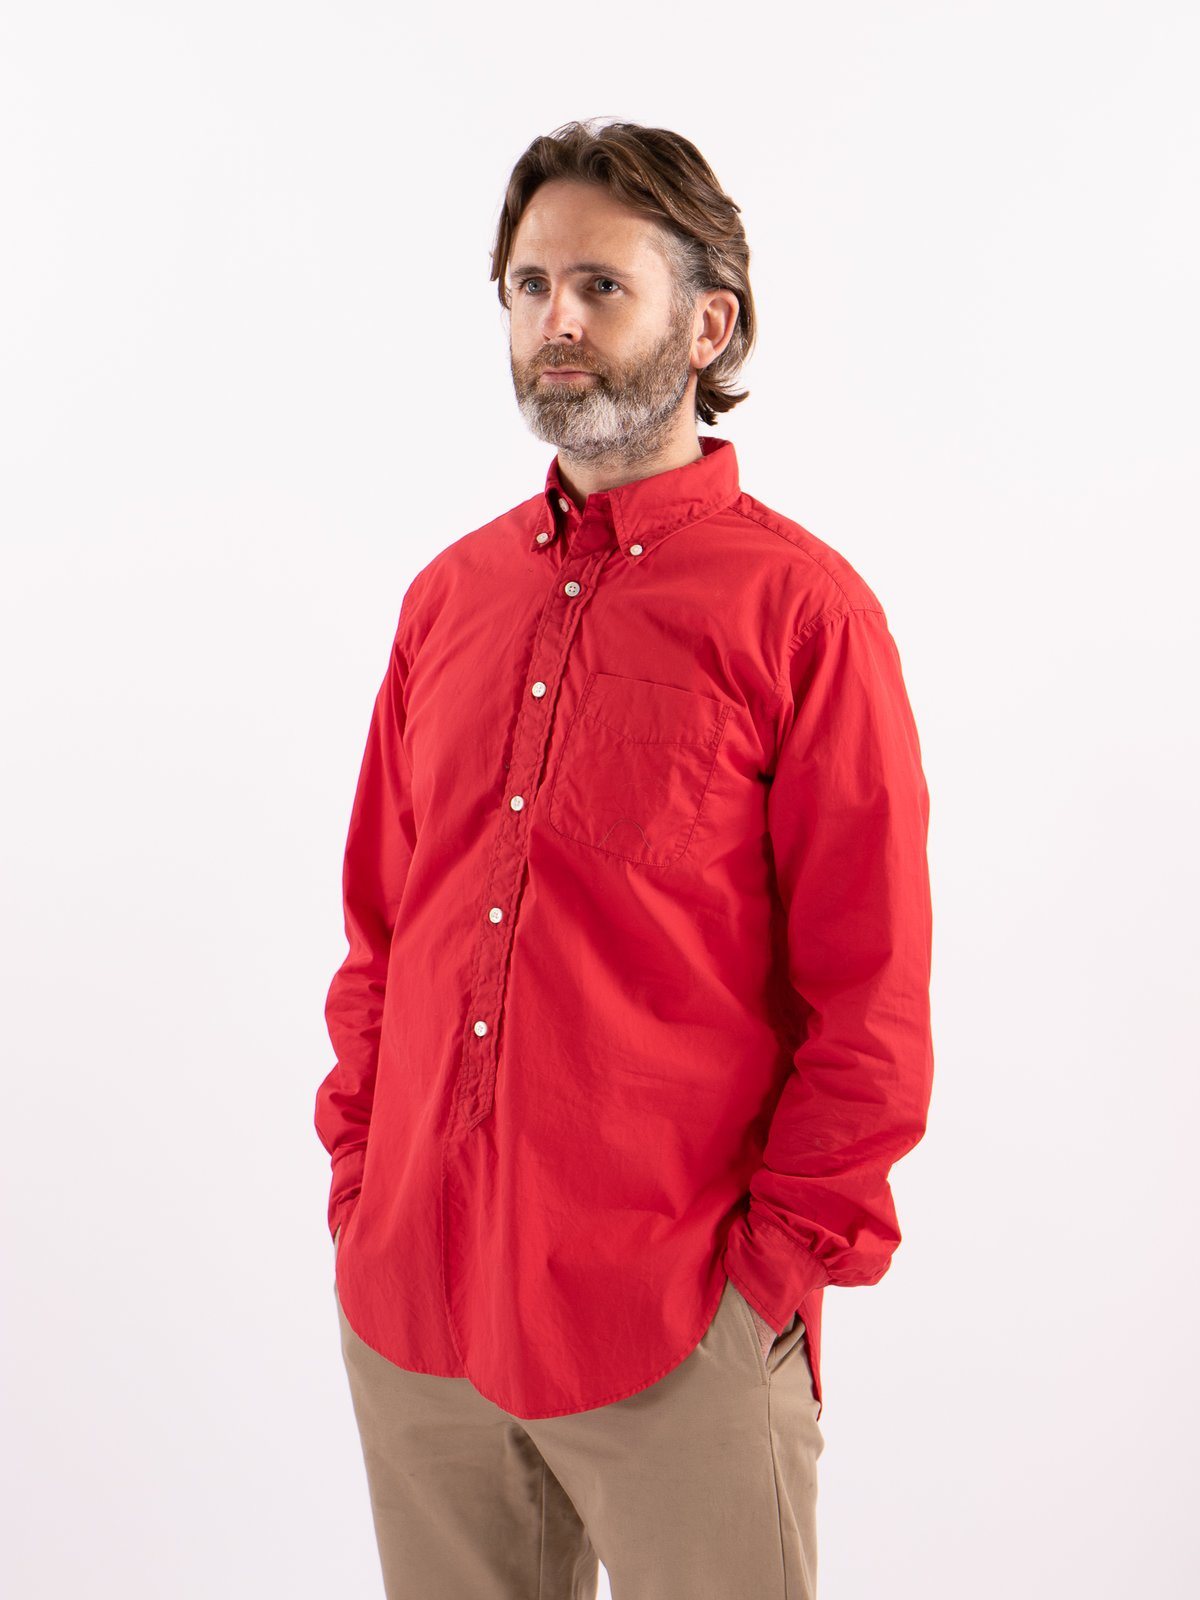 Red 100's 2ply Broadcloth 19th Century BD Shirt - Image 2